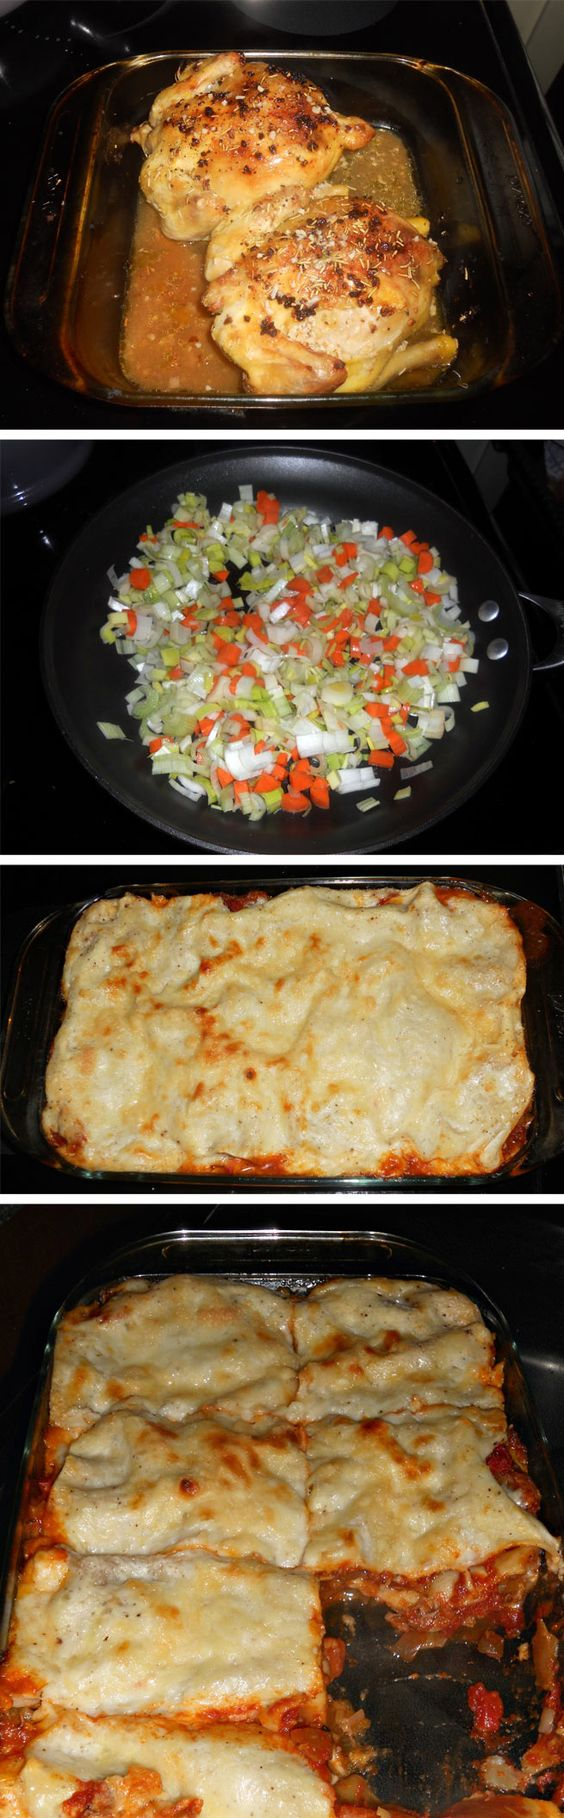 Cornish Hen Lasagna with Chianti Wine Sauce - Adapted from Williams-Sonoma which may have used duck. Previous Pinner said: this is great...